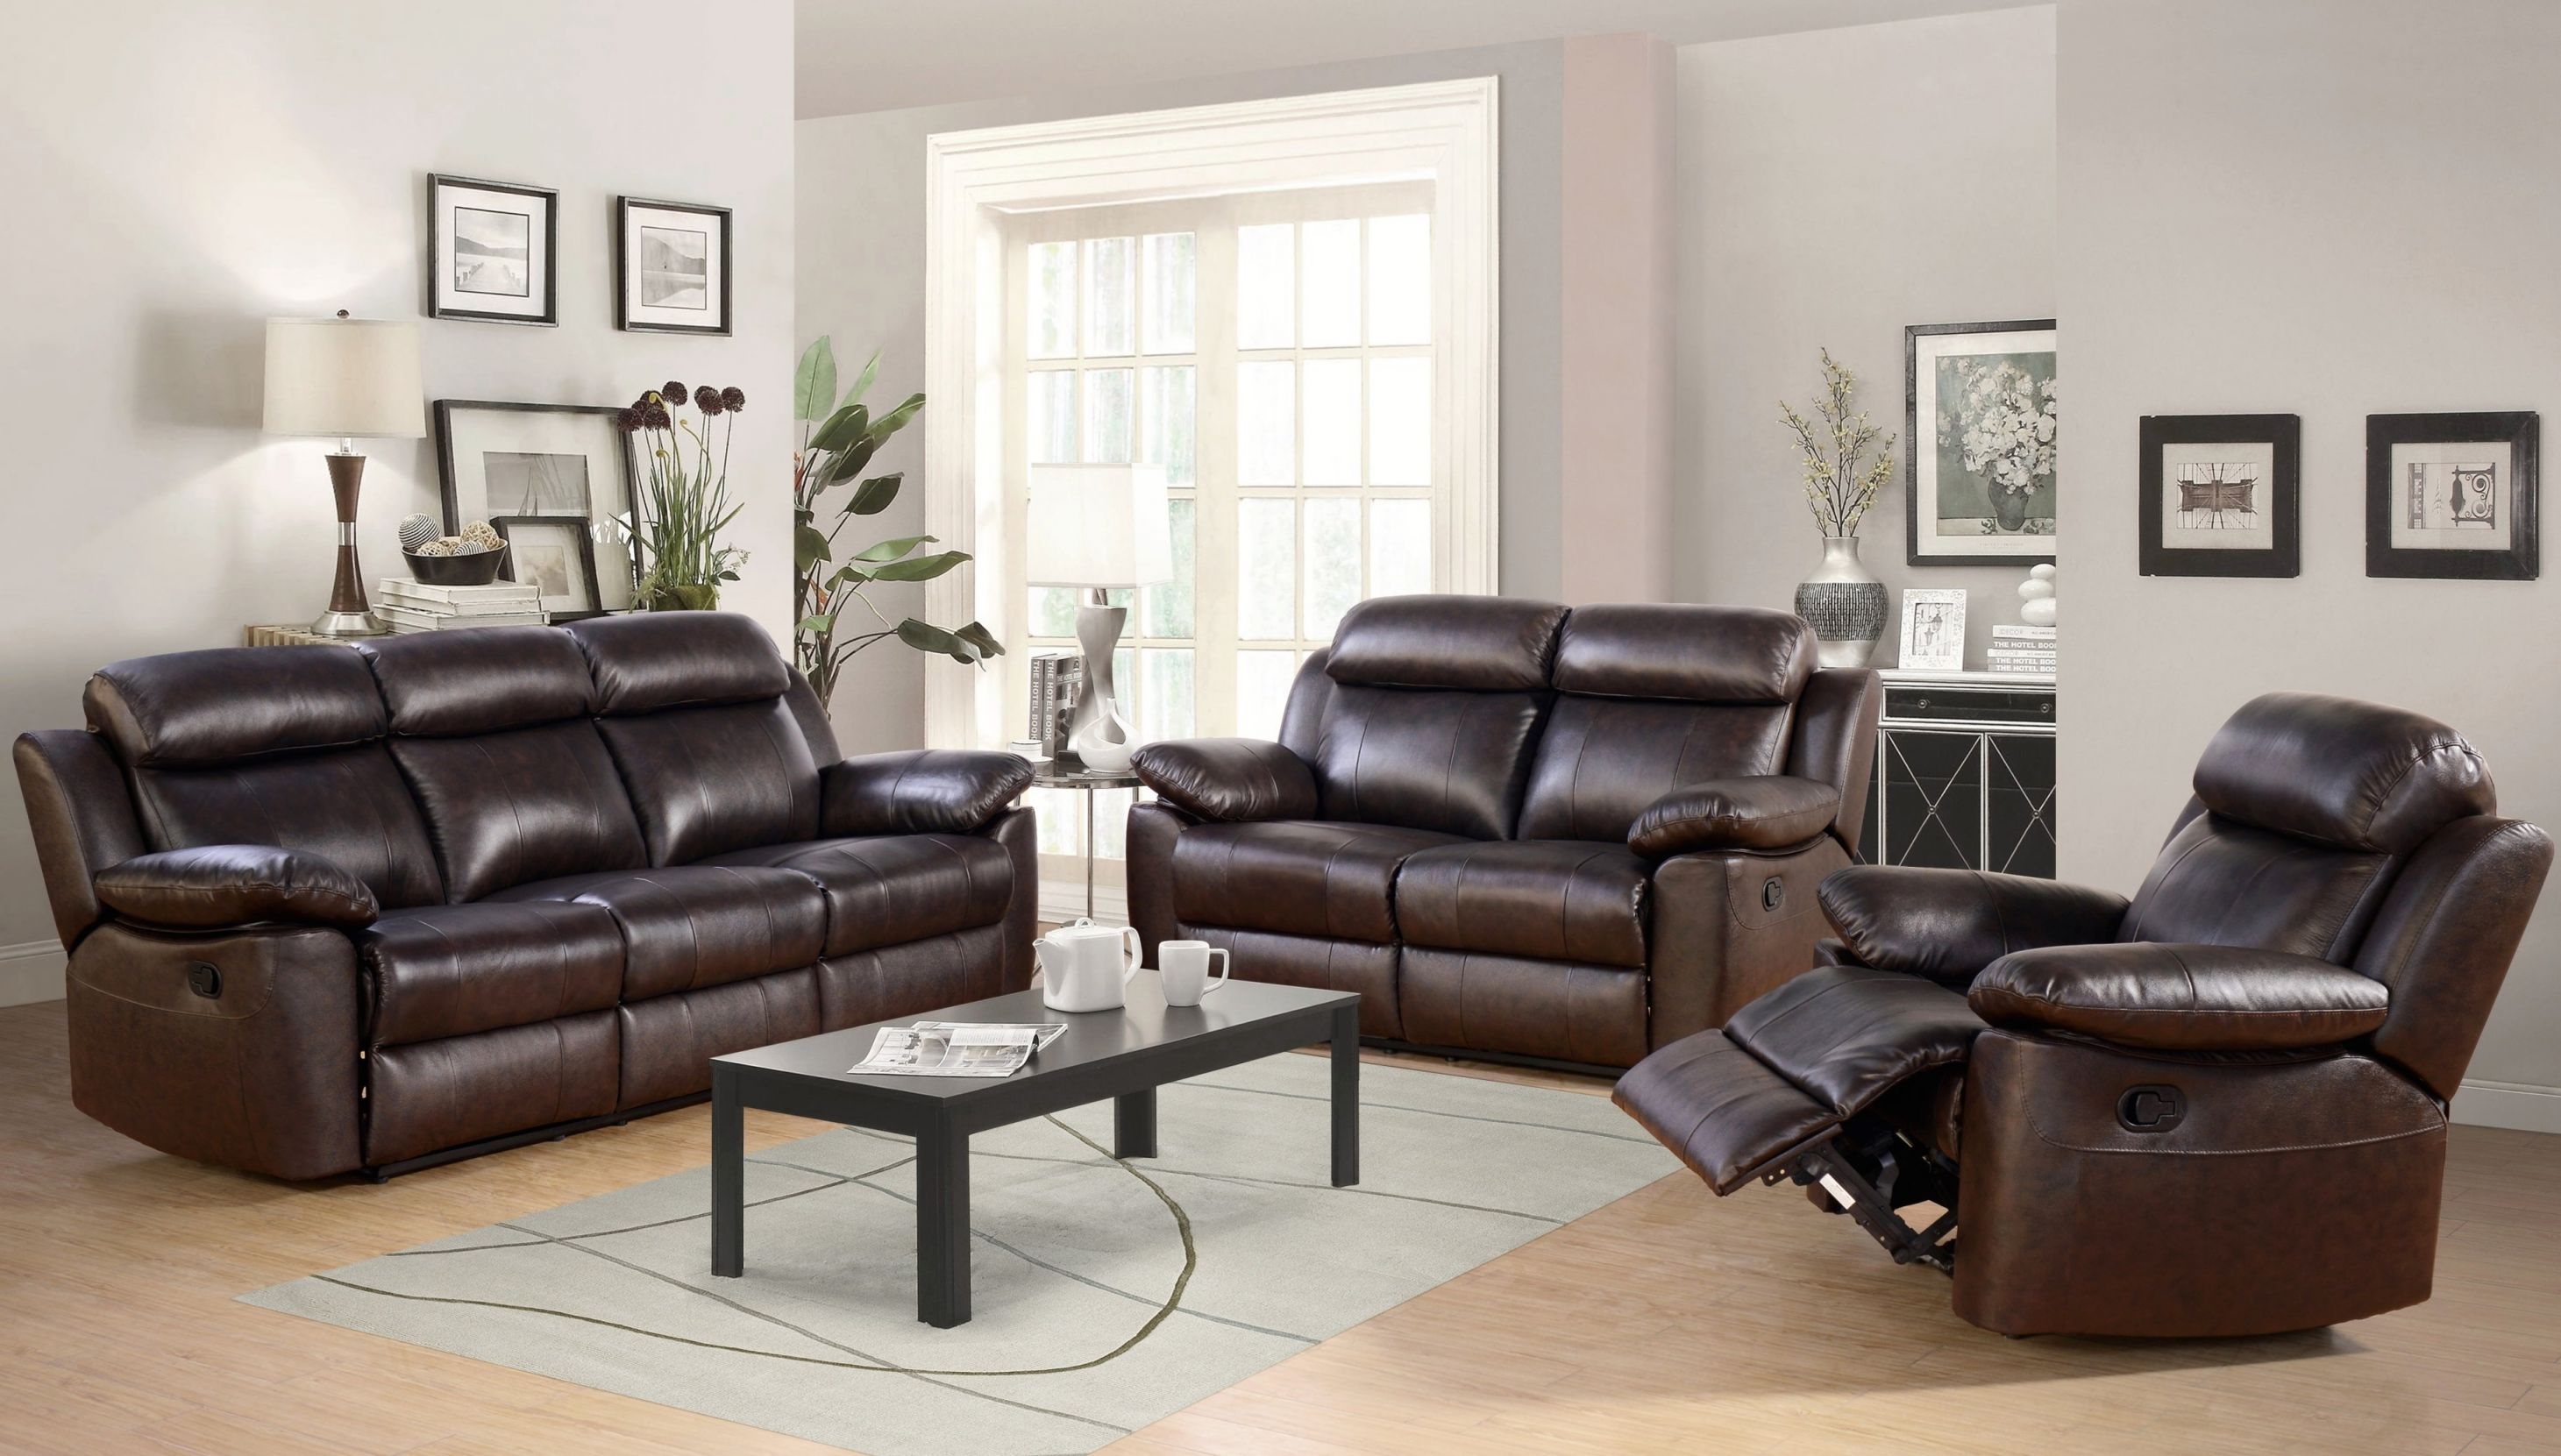 Oliver Reclining Leather 3 Piece Living Room Set regarding Awesome Leather Living Room Sets